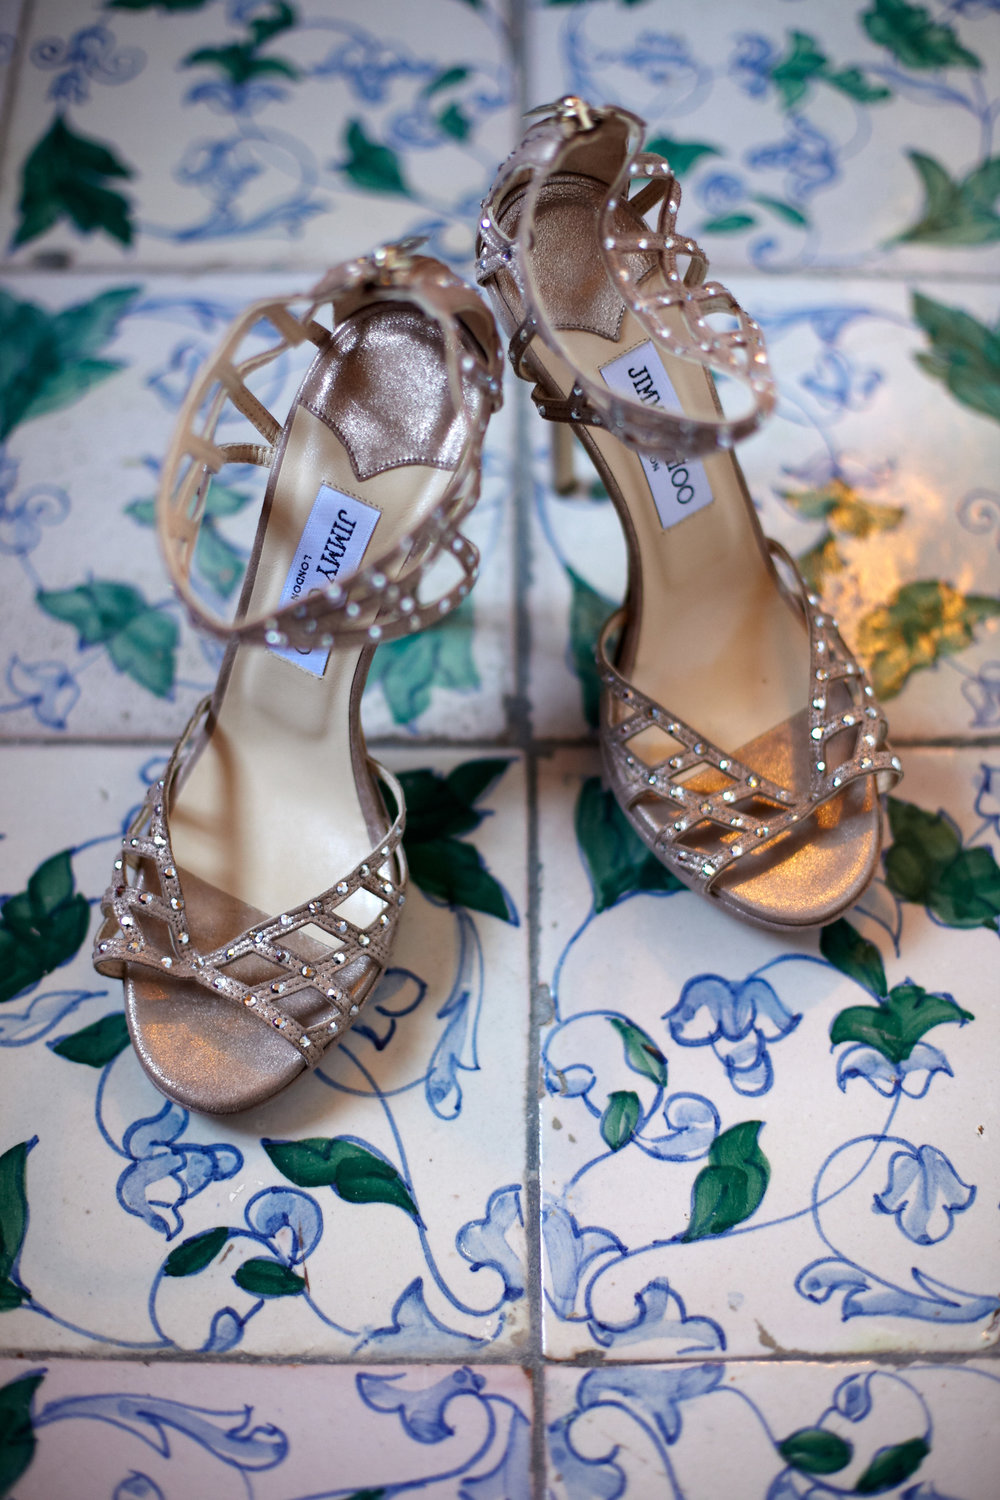 Shoe Details - Ravello, Italy - Summer Wedding - Julian Leaver Events